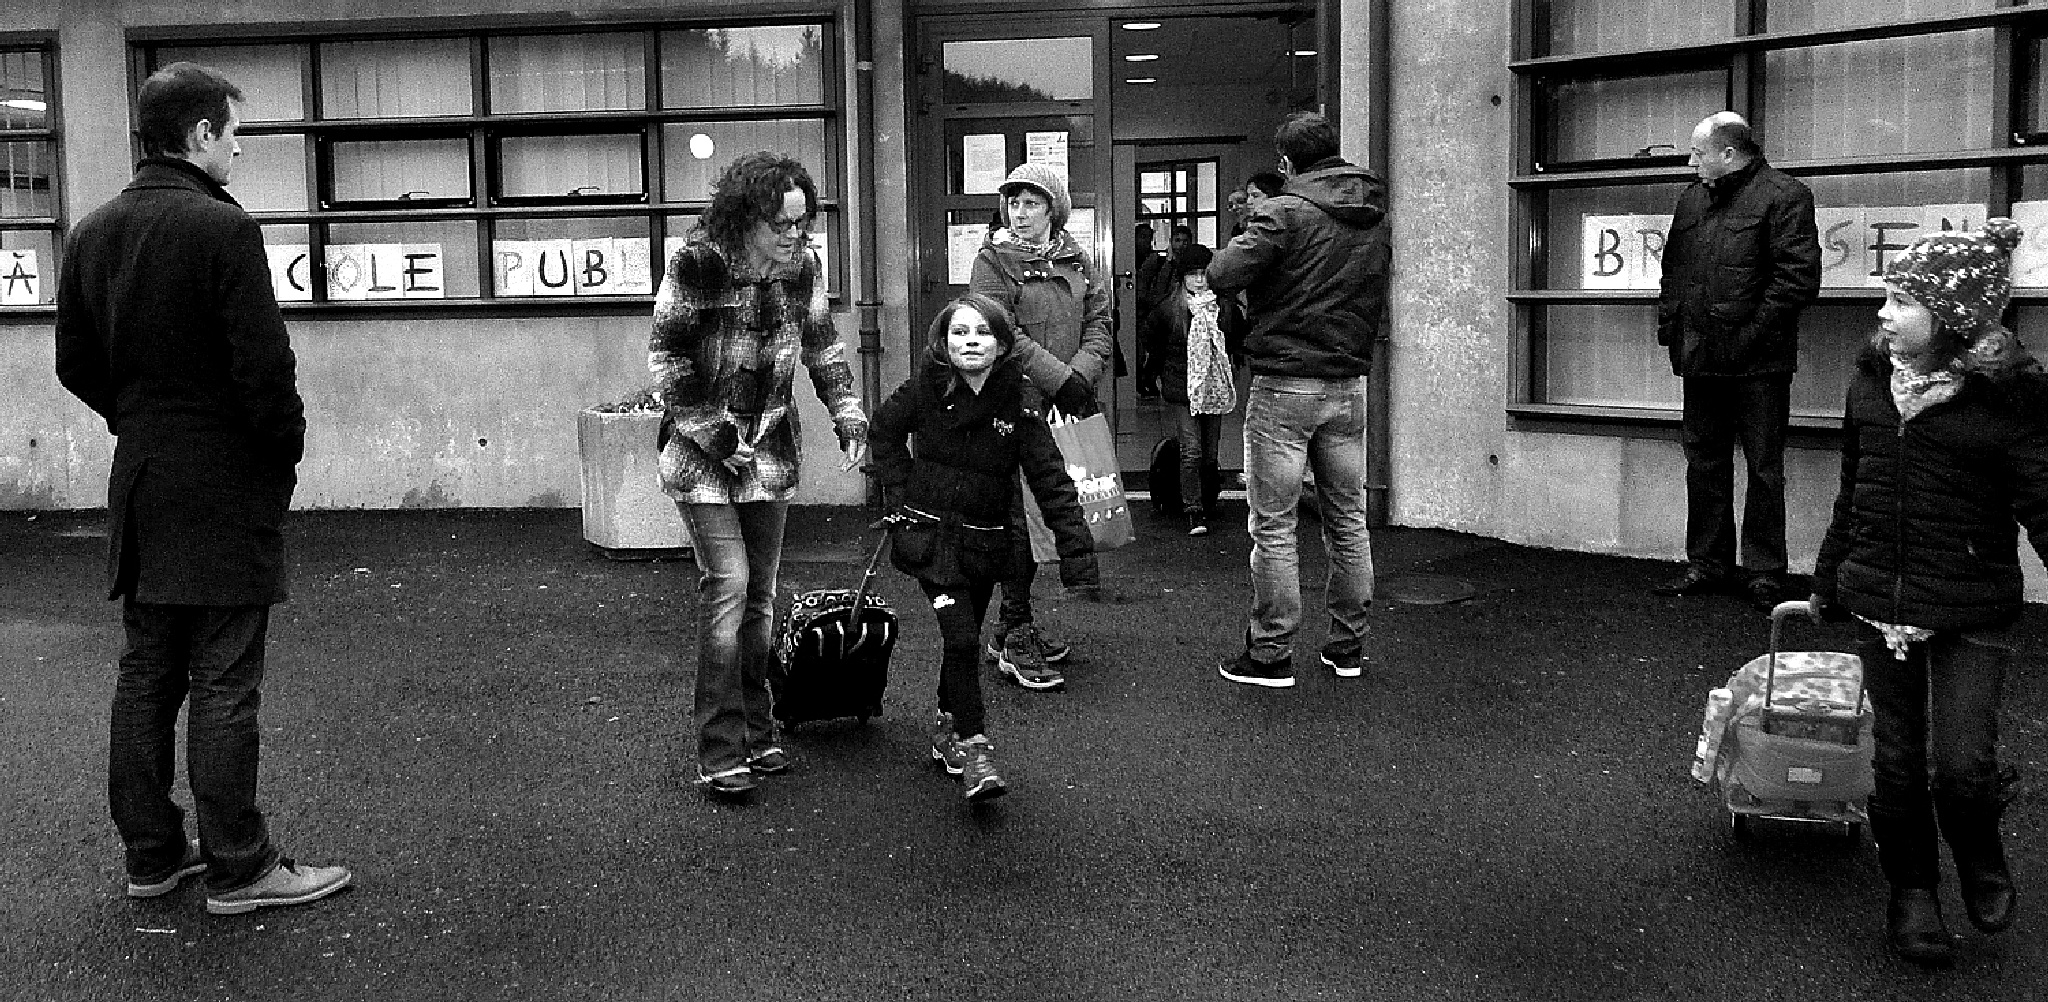 End of the school day. France. by Malcolm White